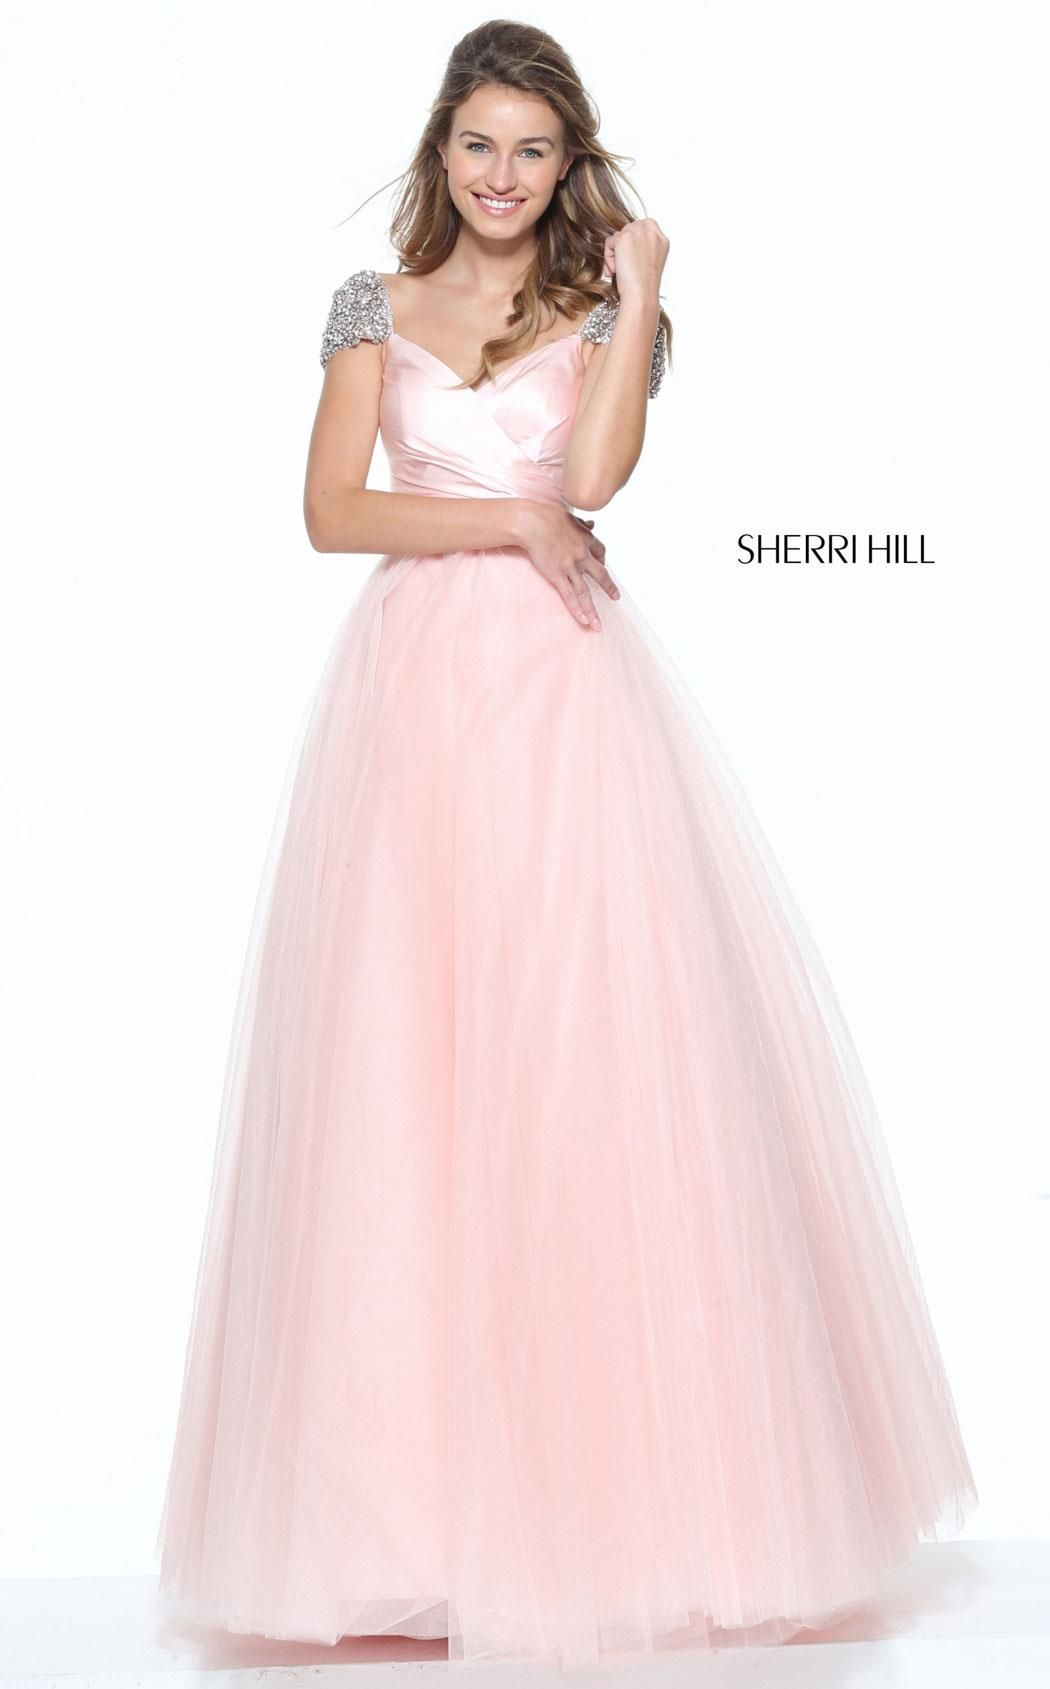 Sherri hill dress cap and gowns